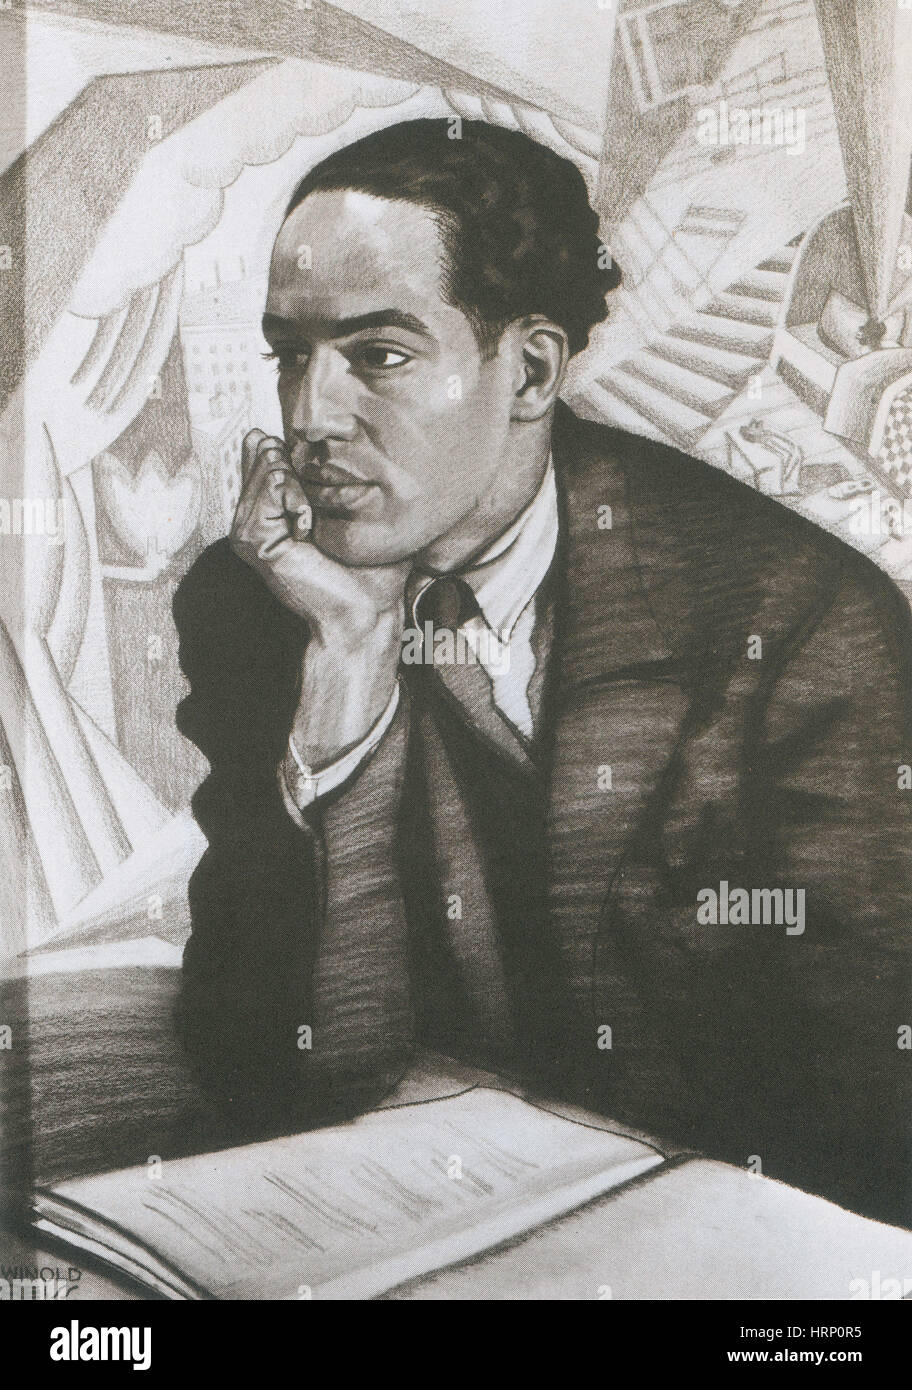 Langston Hughes, American Poet and Activist - Stock Image